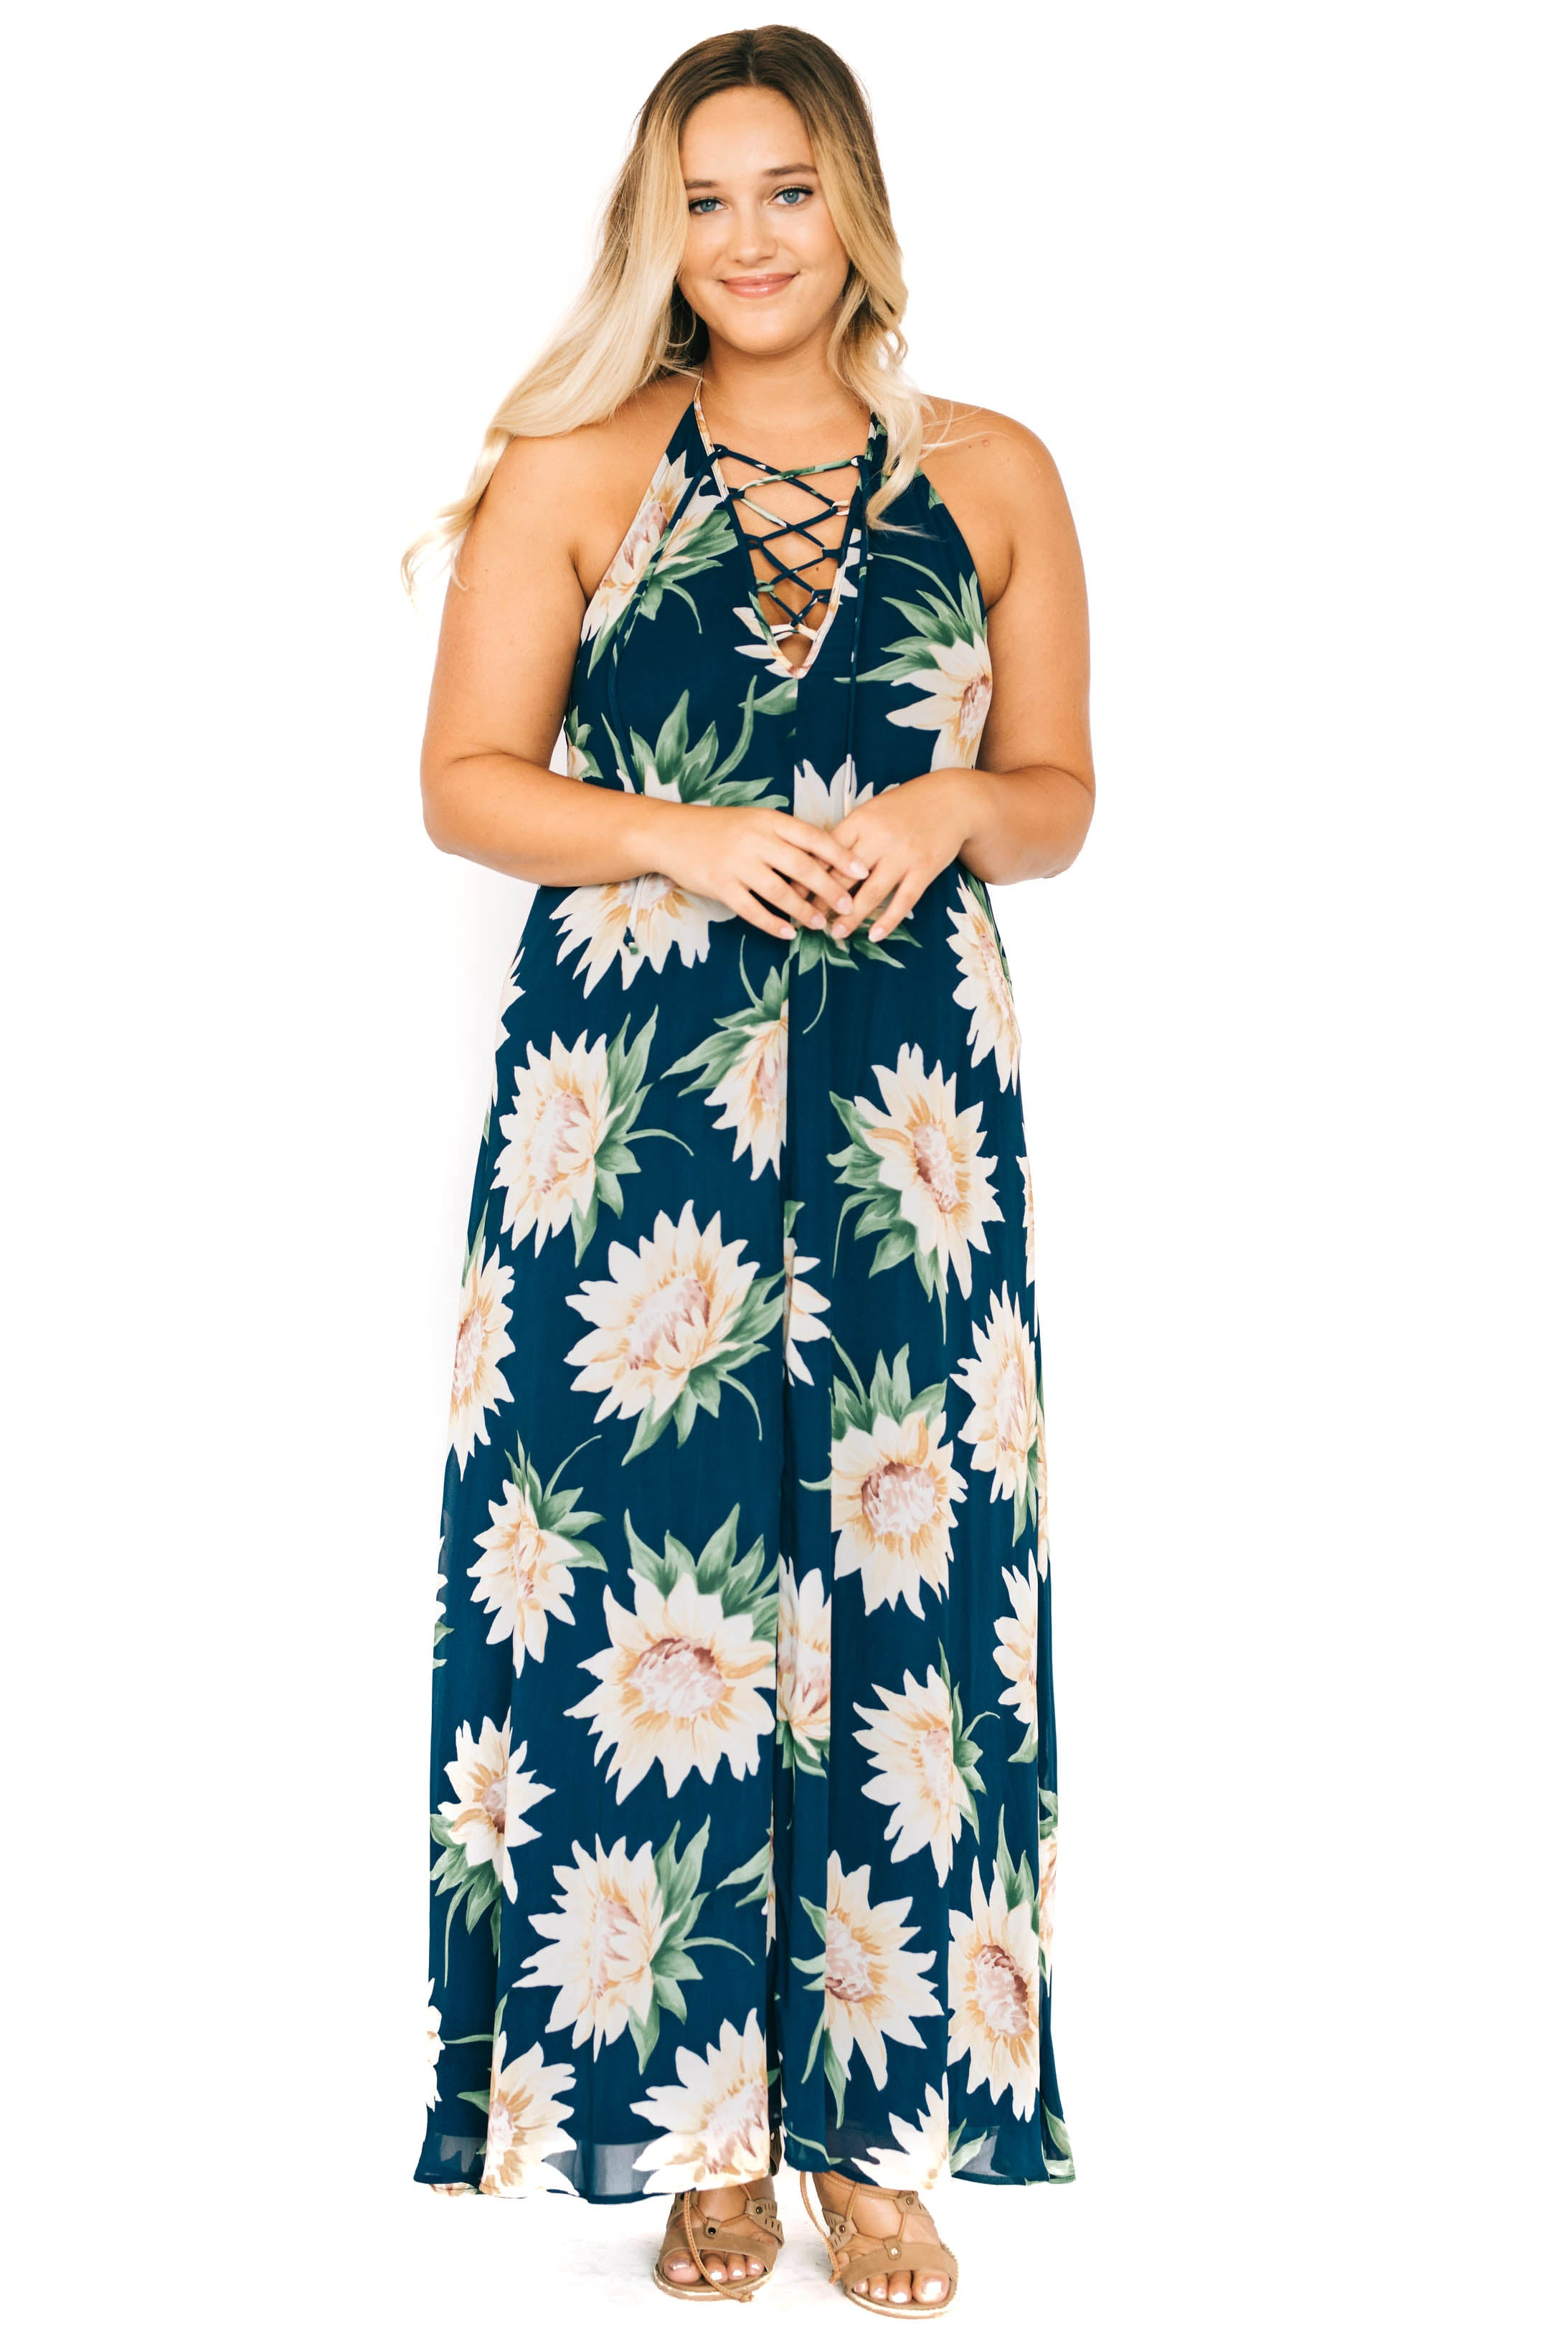 Sunflower Dreams Logan Lace Up Maxi Dress